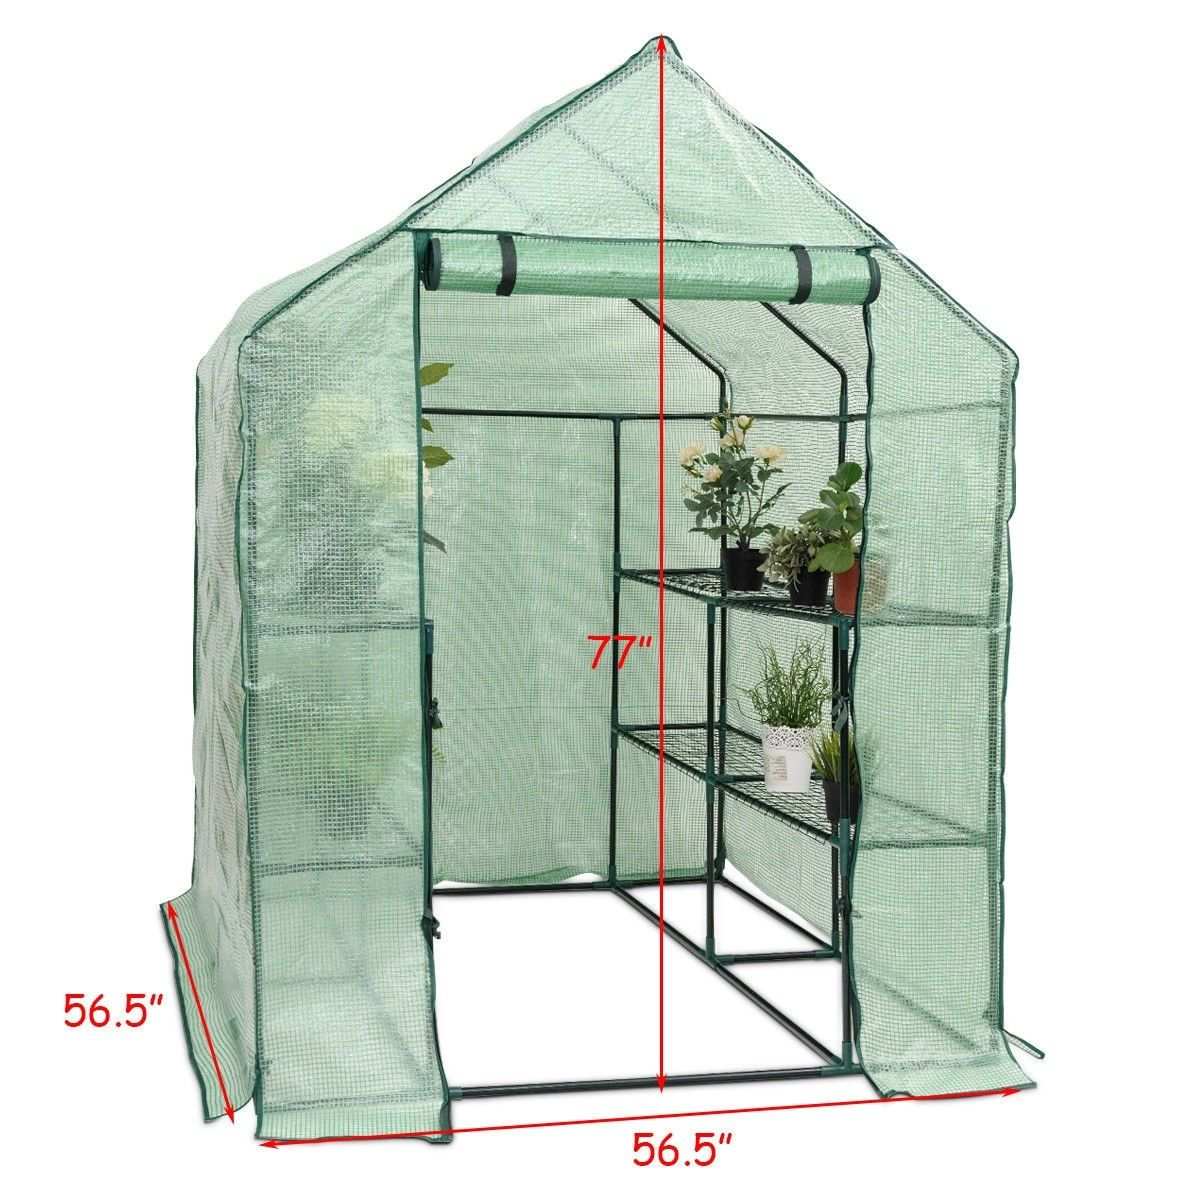 8 Shelves Portable Greenhouse Color Green Dimensions 57 X 57 X 77 L X W X H Cover Material 140g Pe Mes Portable Greenhouse Walk In Greenhouse Greenhouse